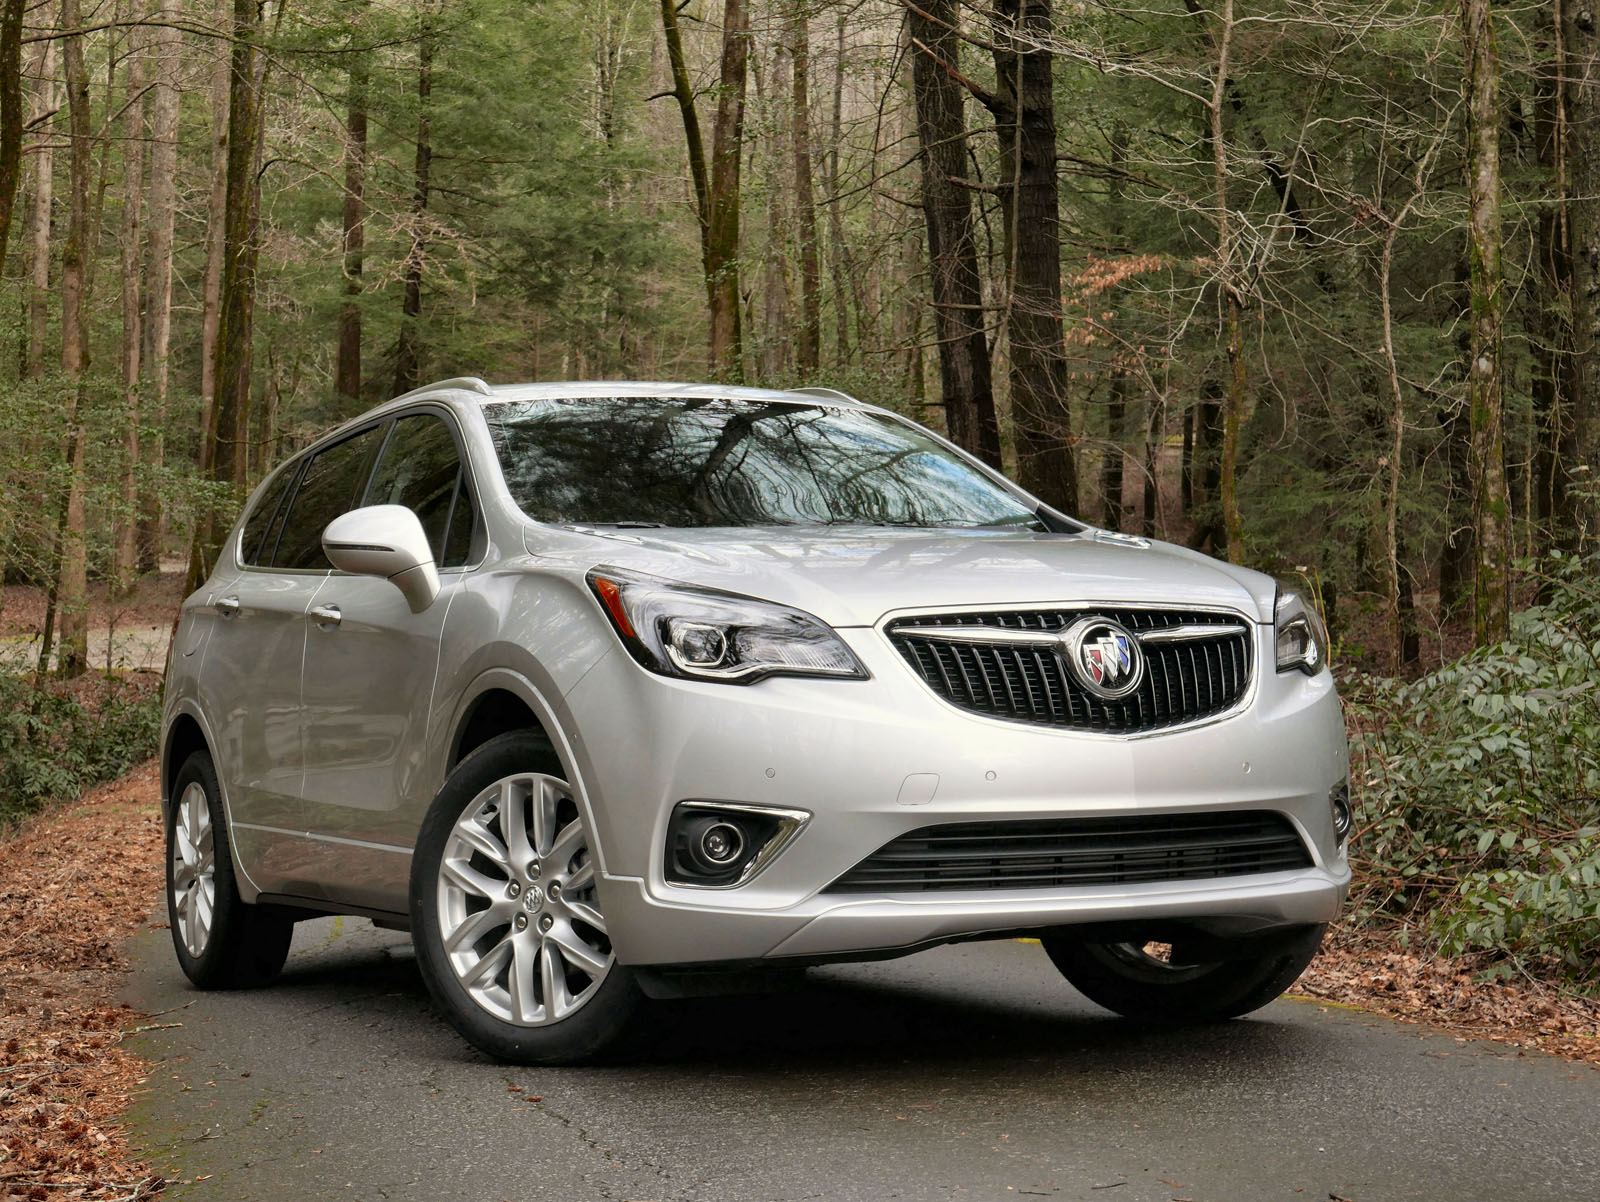 is nampa at made inventory new sport kendall fwd vehicle the in preferred buick encore utility where